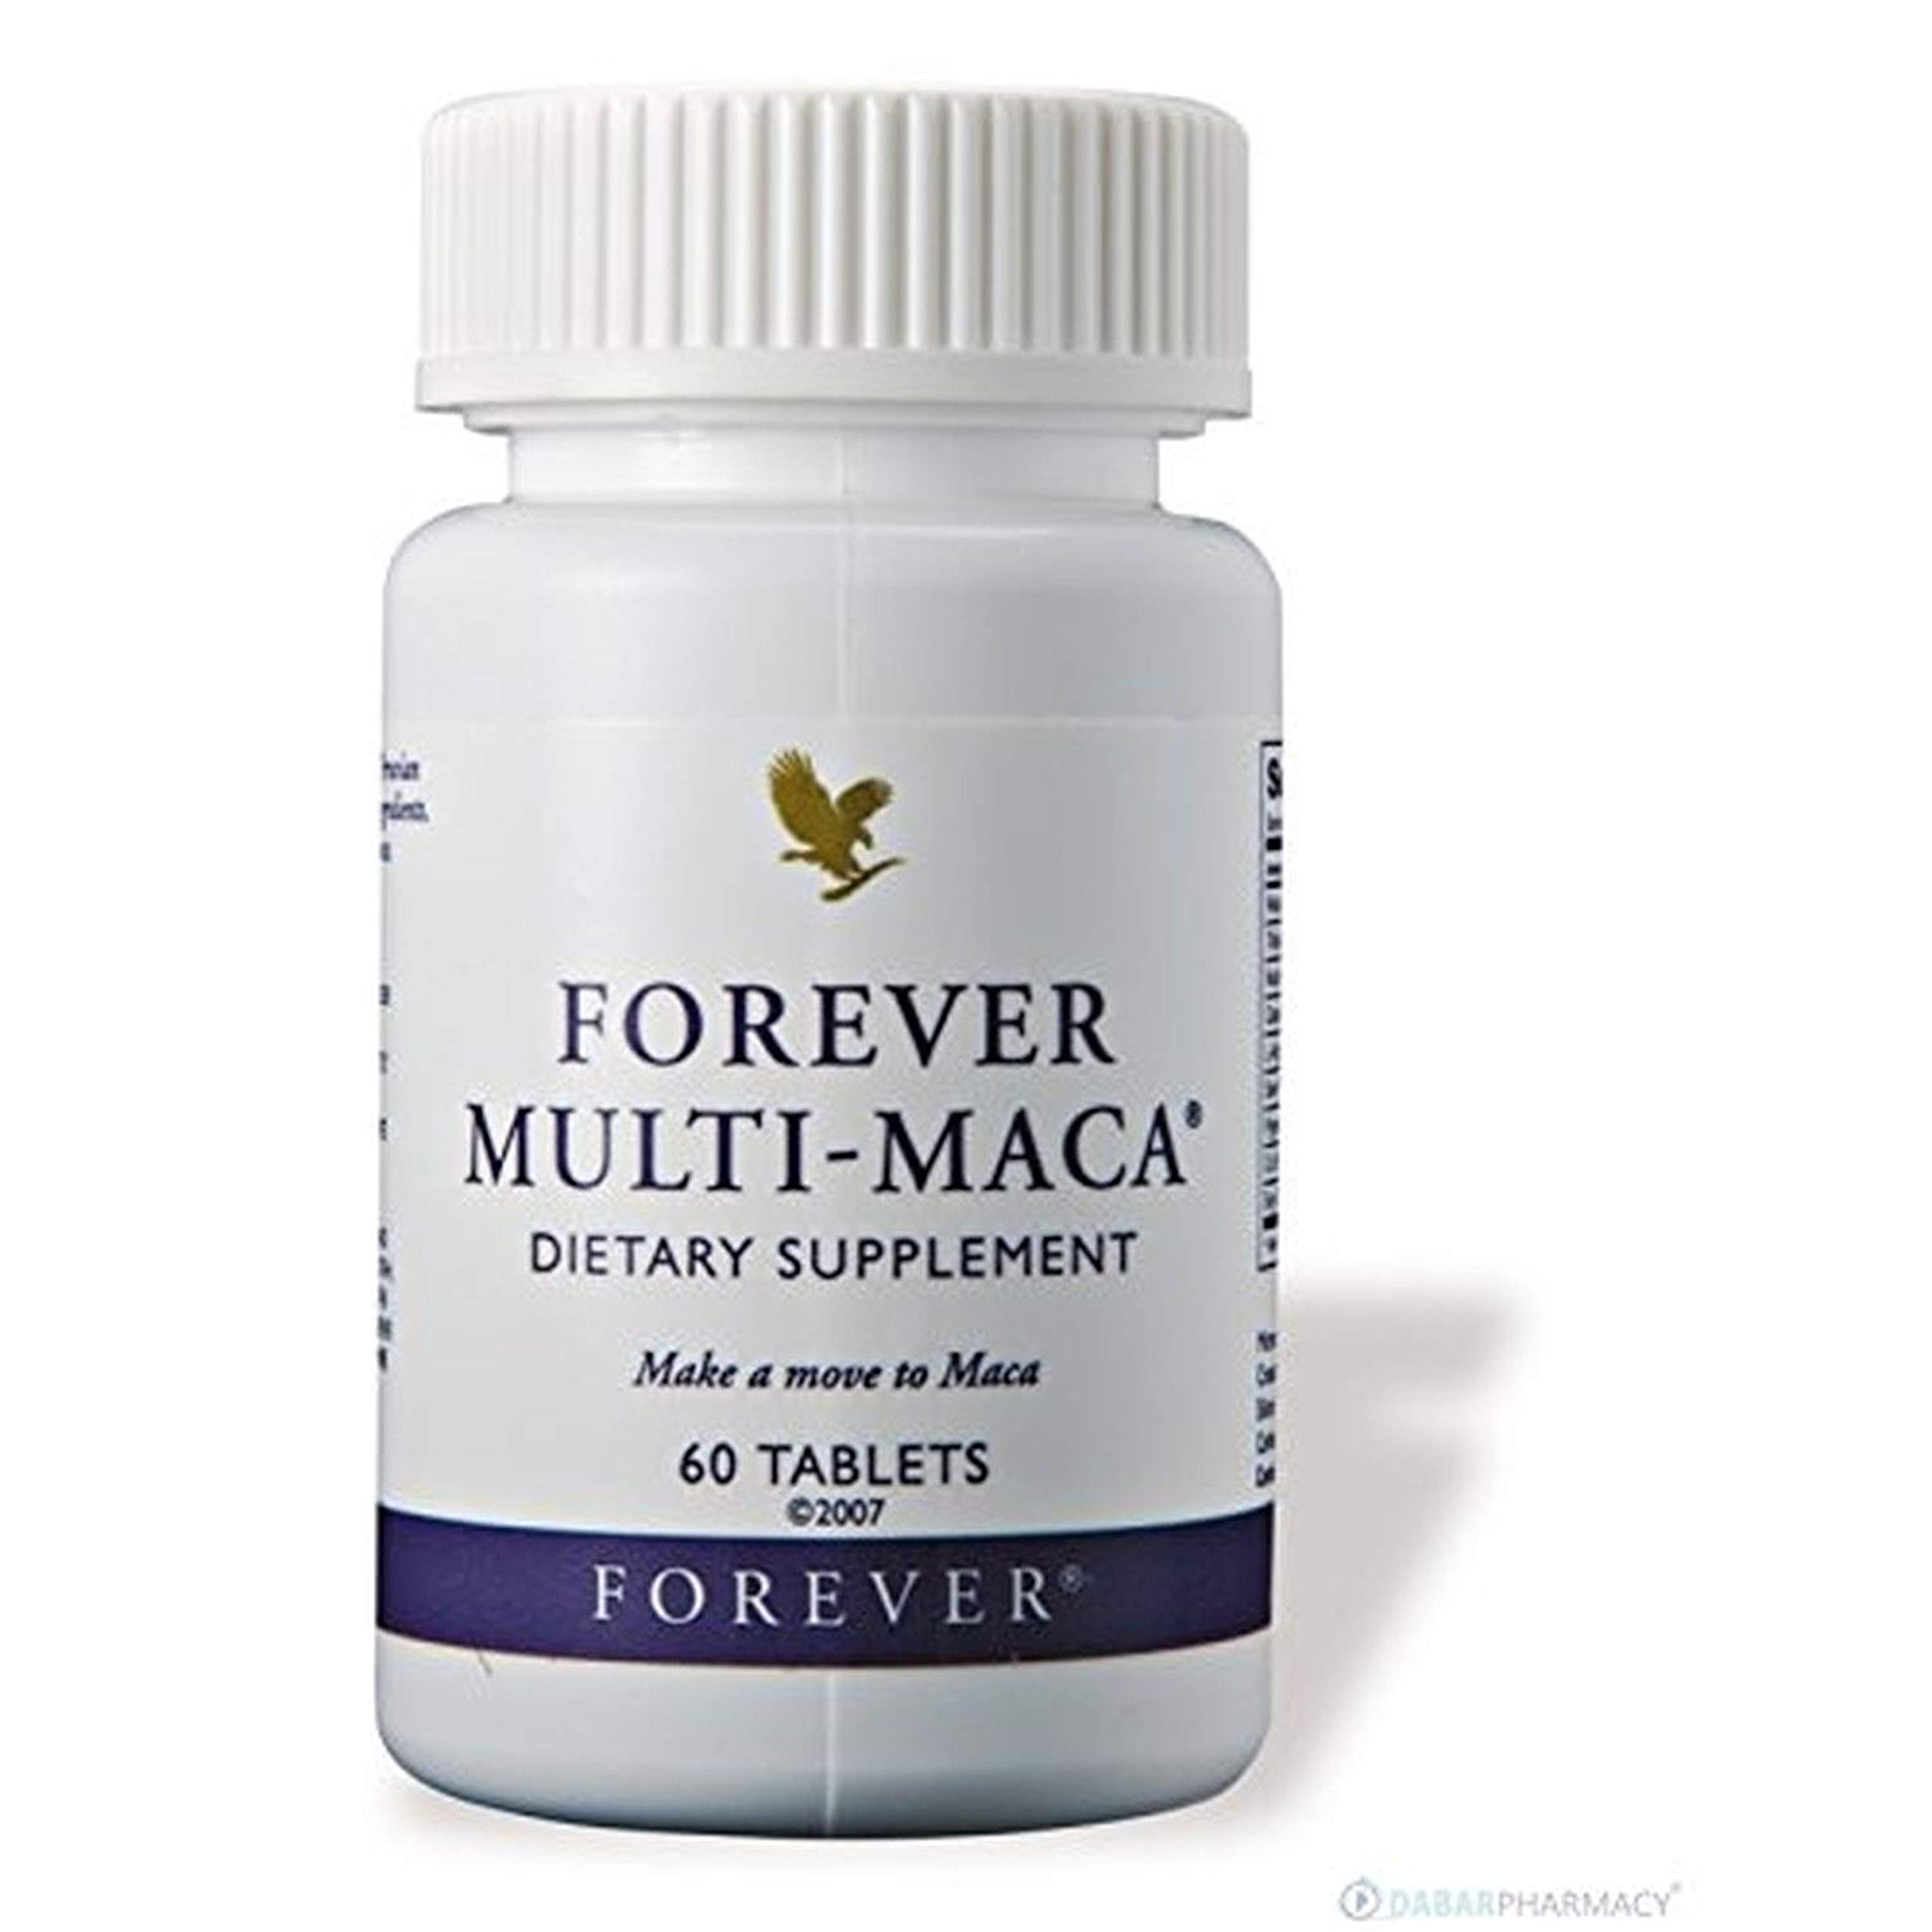 Forever Multi-Maca Dietary Supplement (60 Tablets)